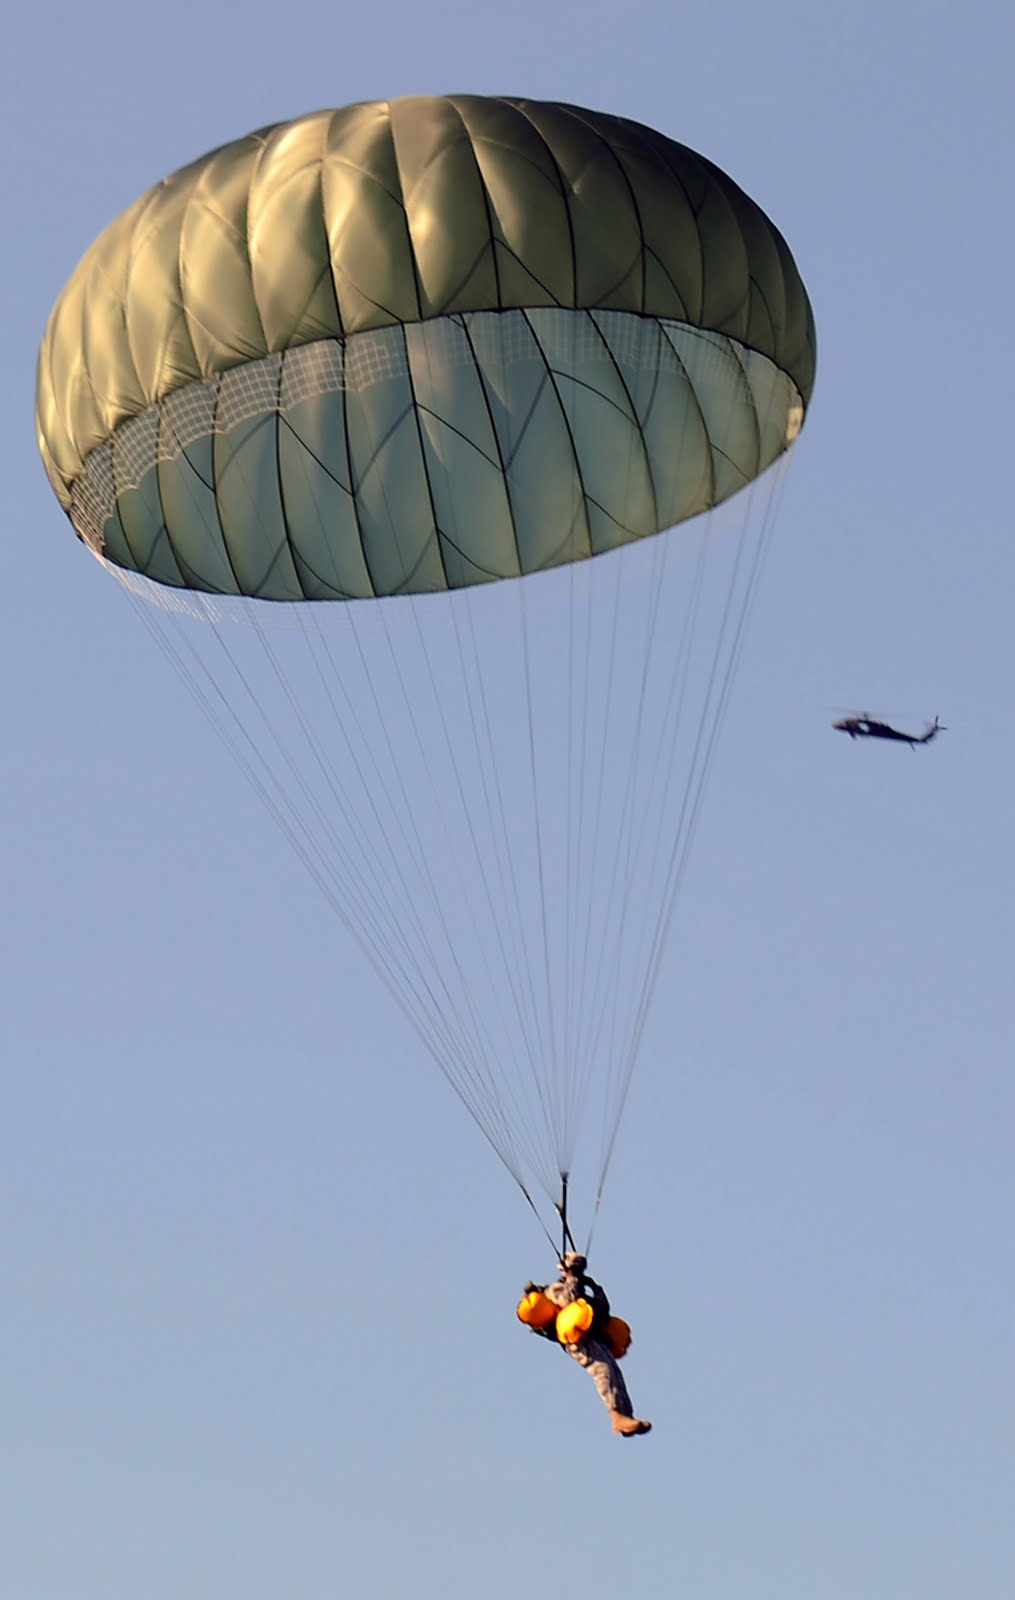 SNAFU!: 501st Parachute Infantry Regiment does water ops...